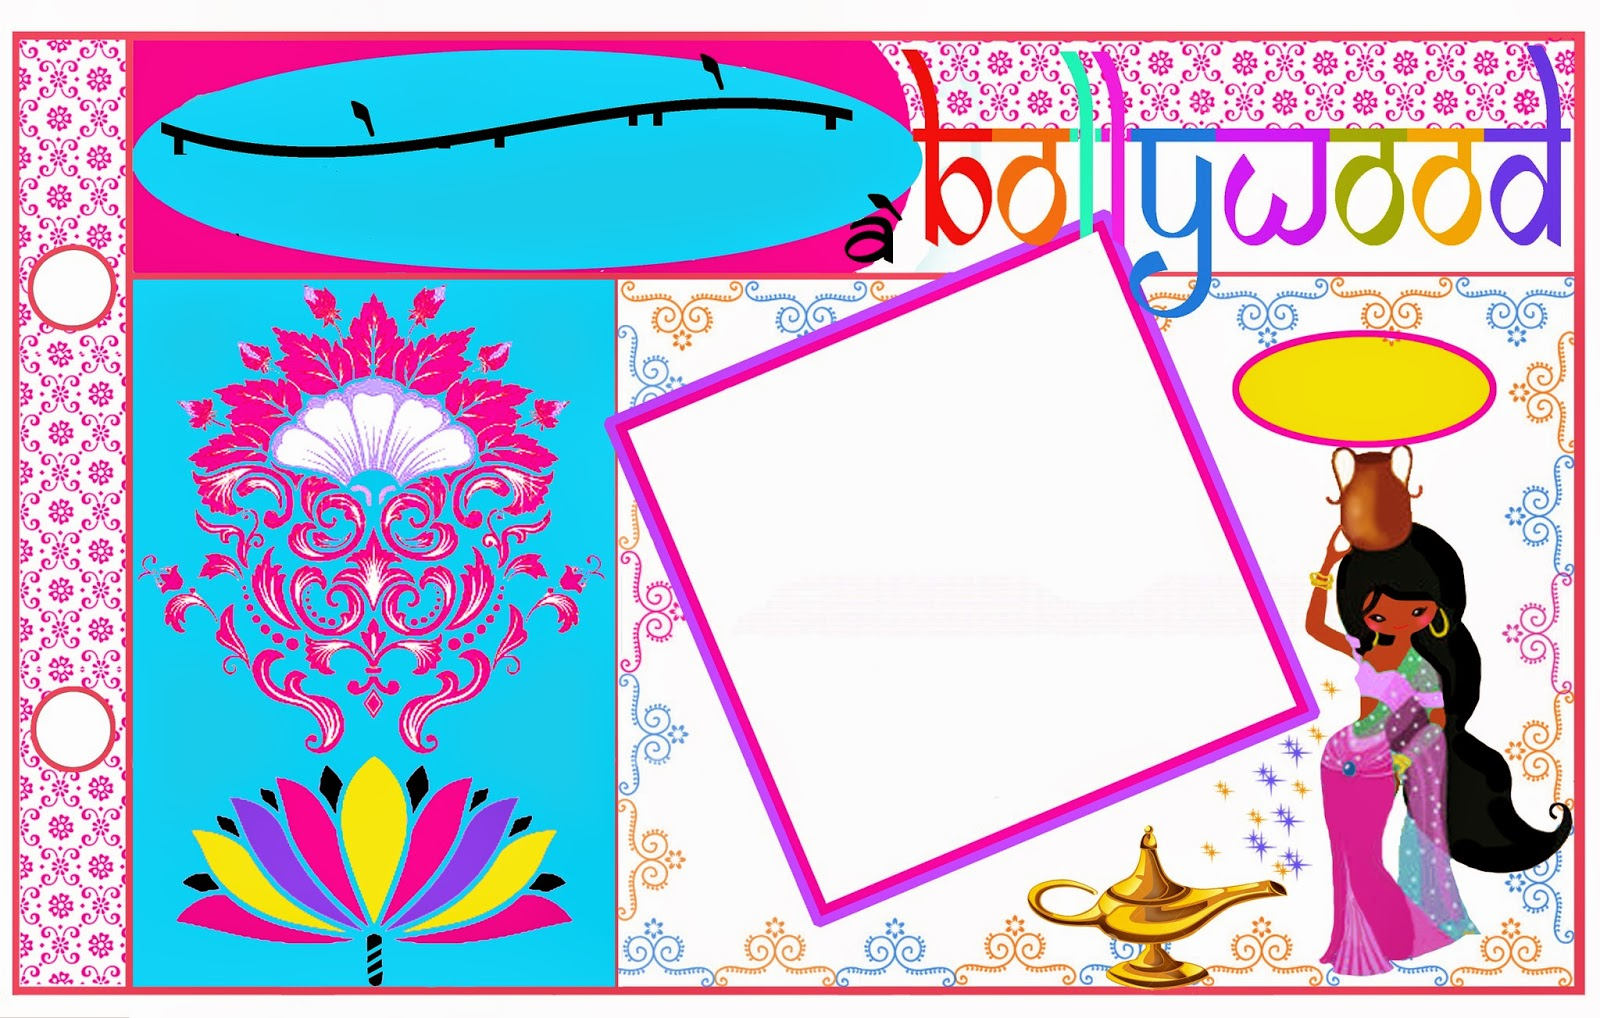 Bollywood: Free Printable Photo Album. | Is it for PARTIES? Is it ...